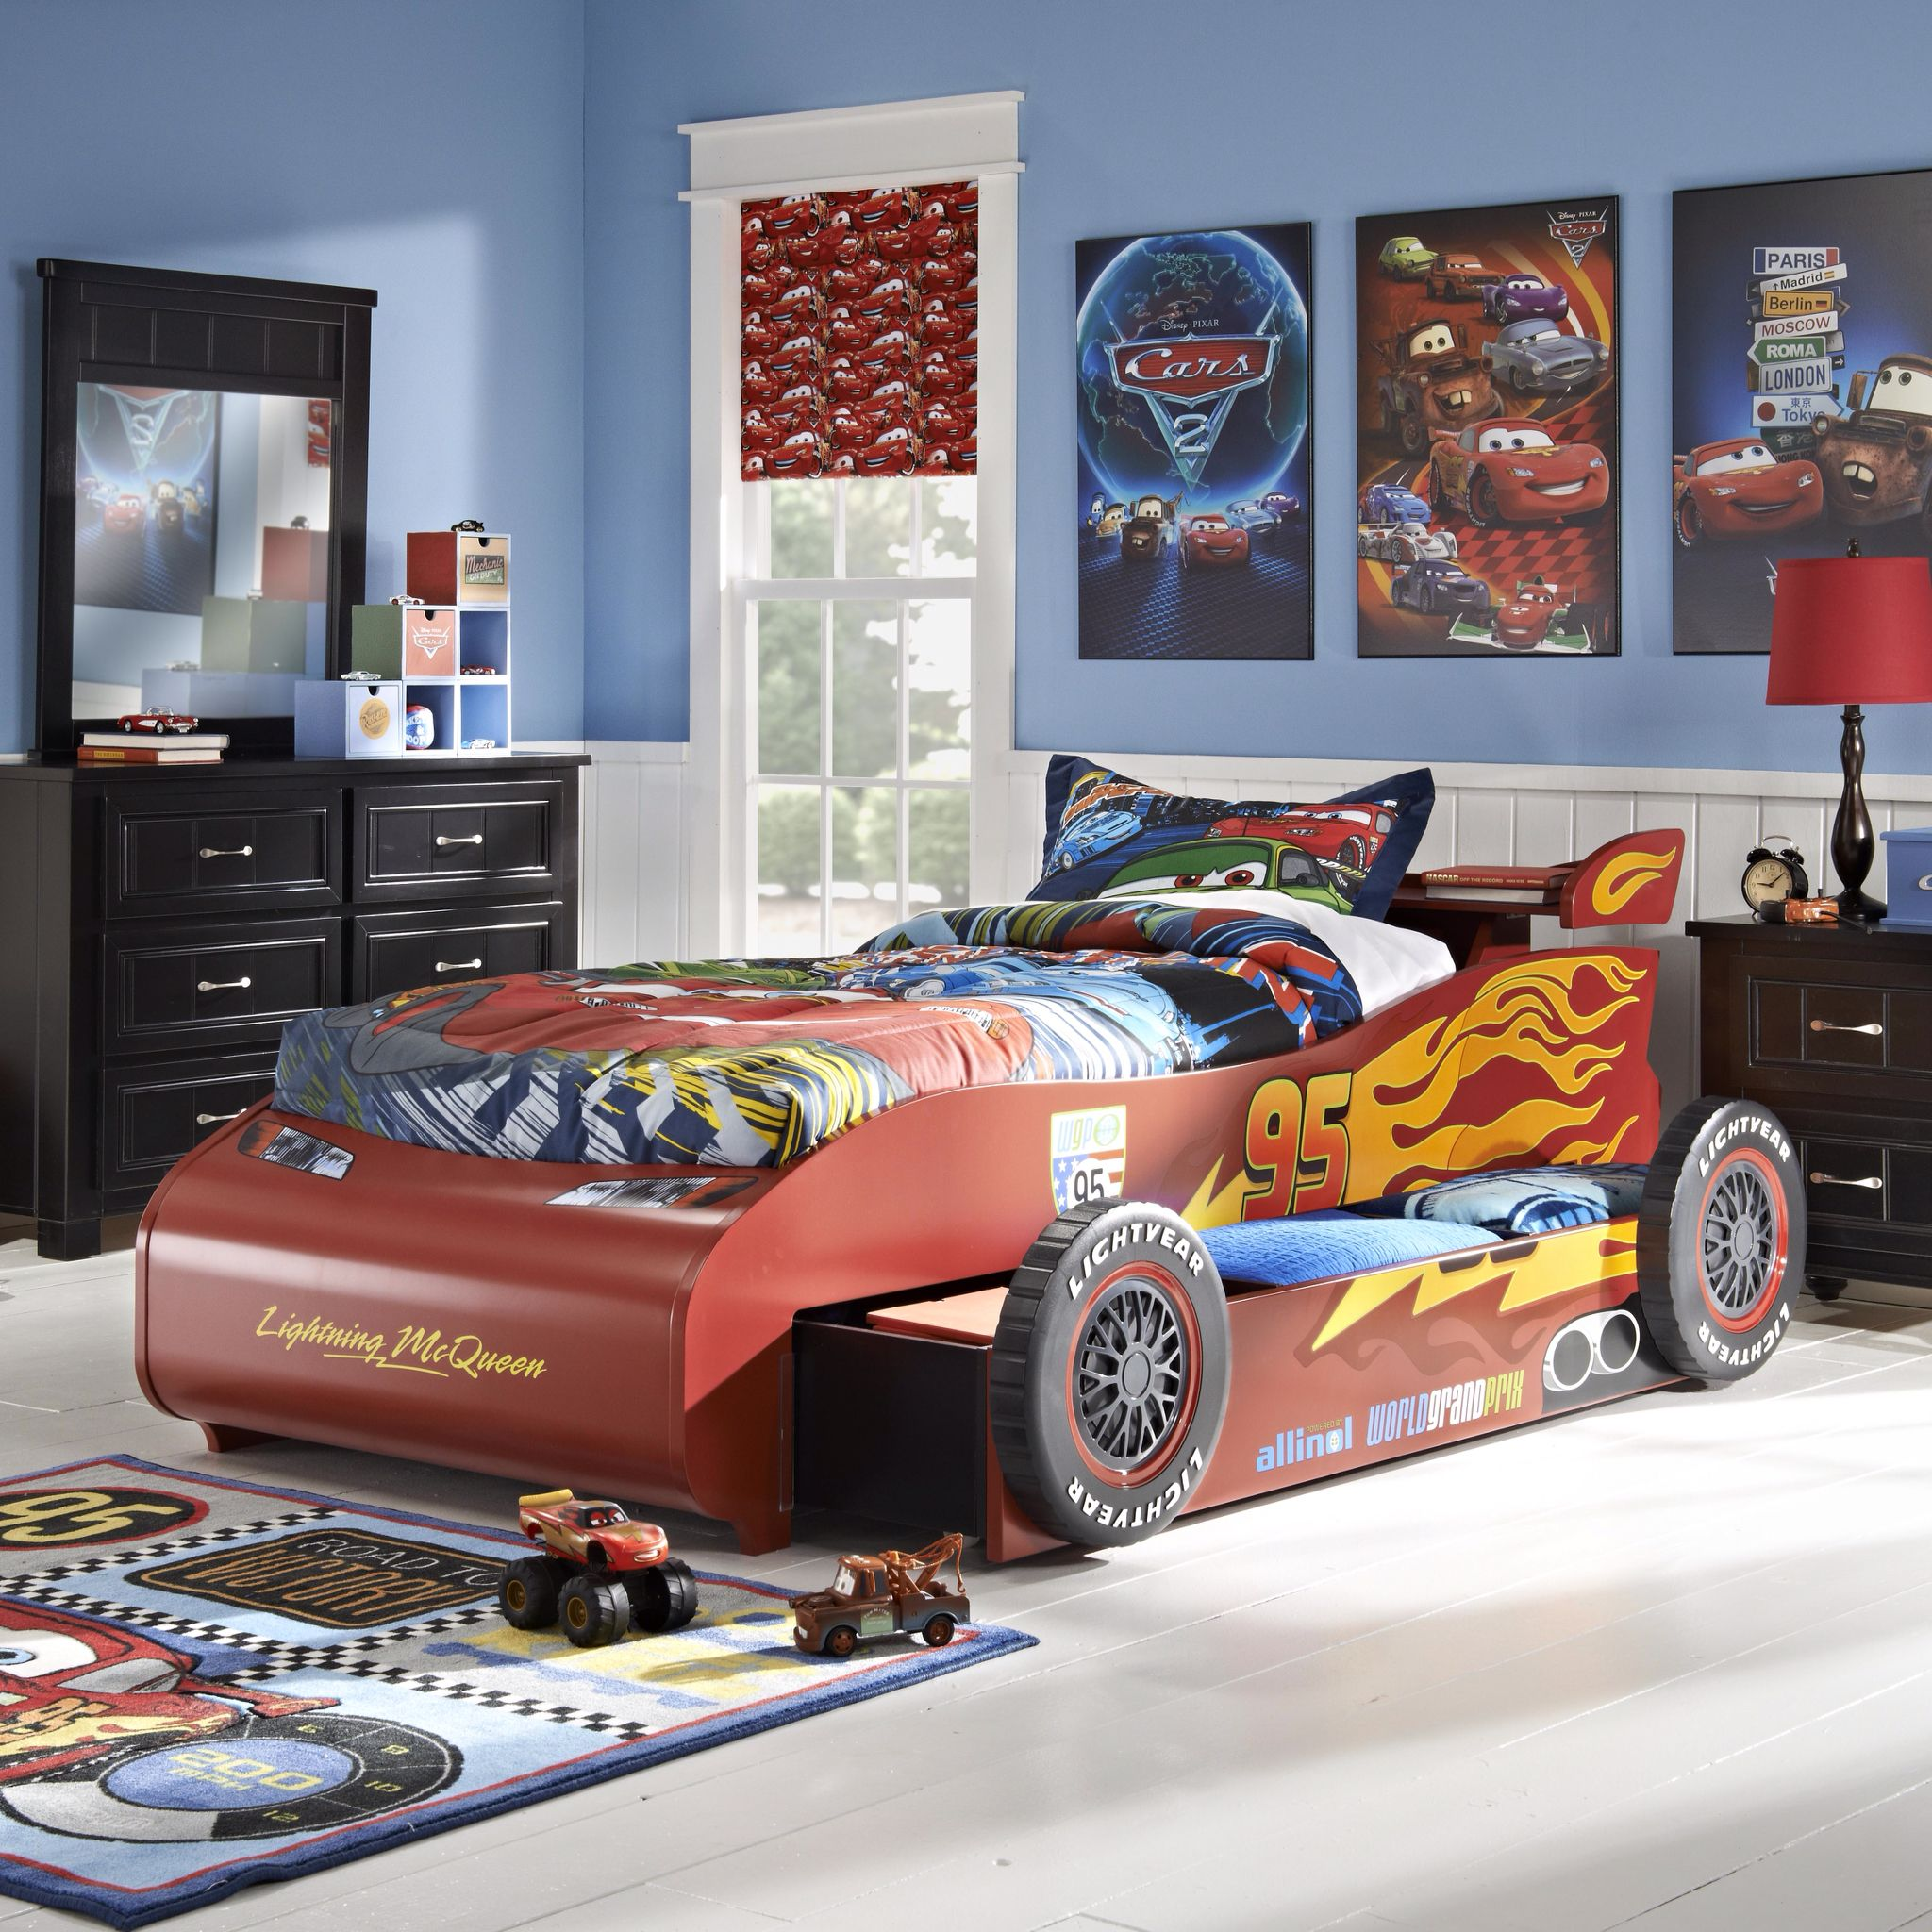 Affordable Disney Cars Bedroom Furniture For Sale. Disney Cars Bedroom Set  Featuring A Lightning McQueen Bed, Dresser, And Mirror.